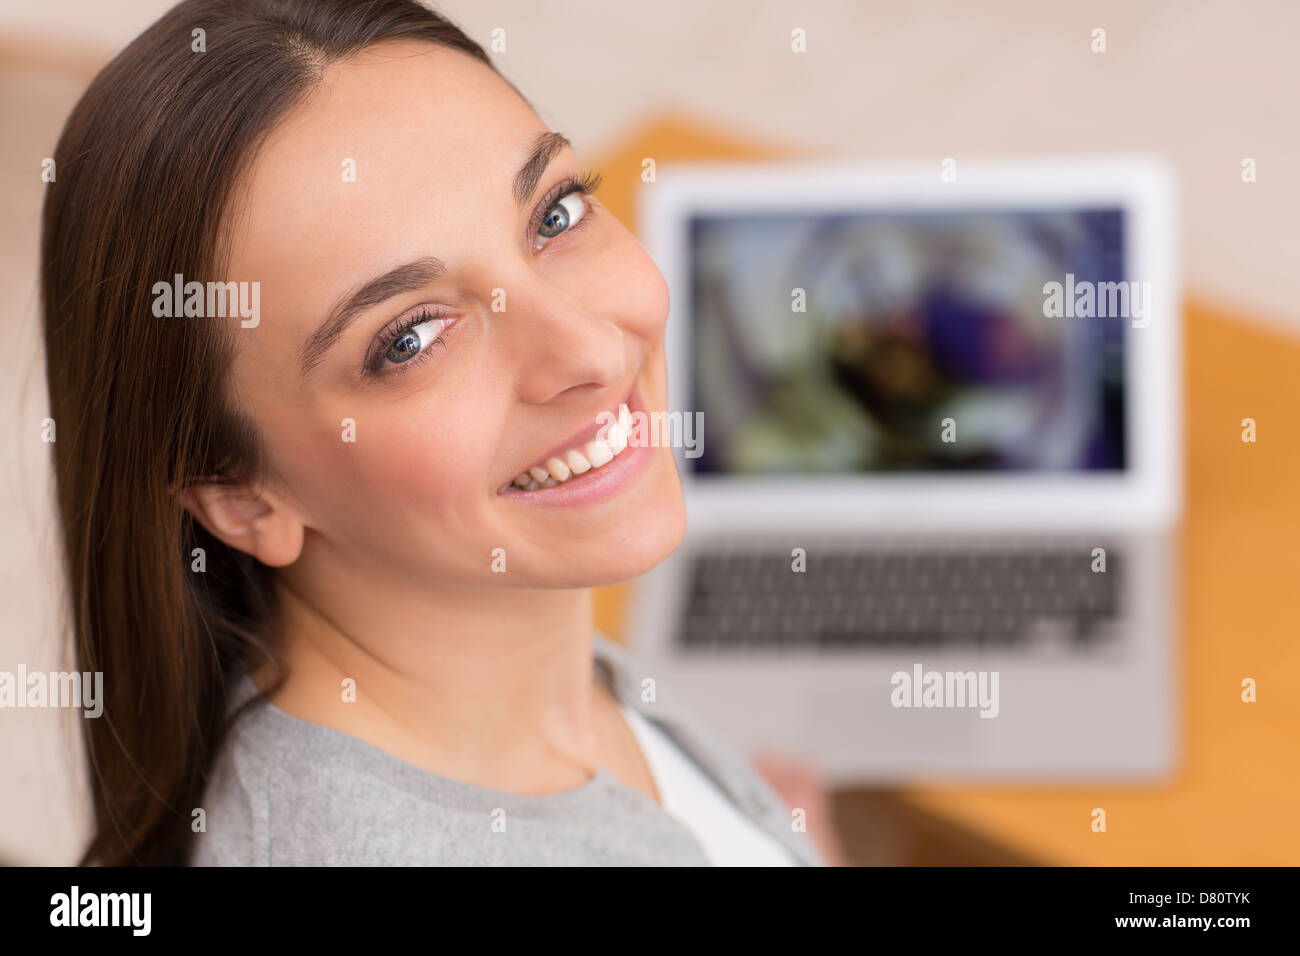 Female looking at pictures on her computer - Stock Image